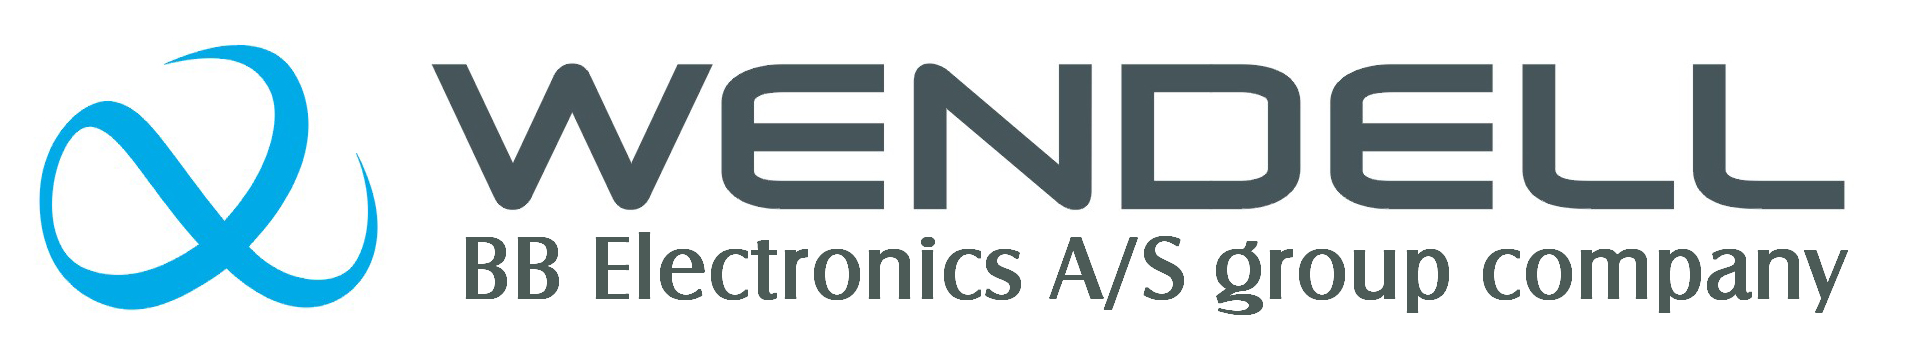 Wendell electronics, a.s.